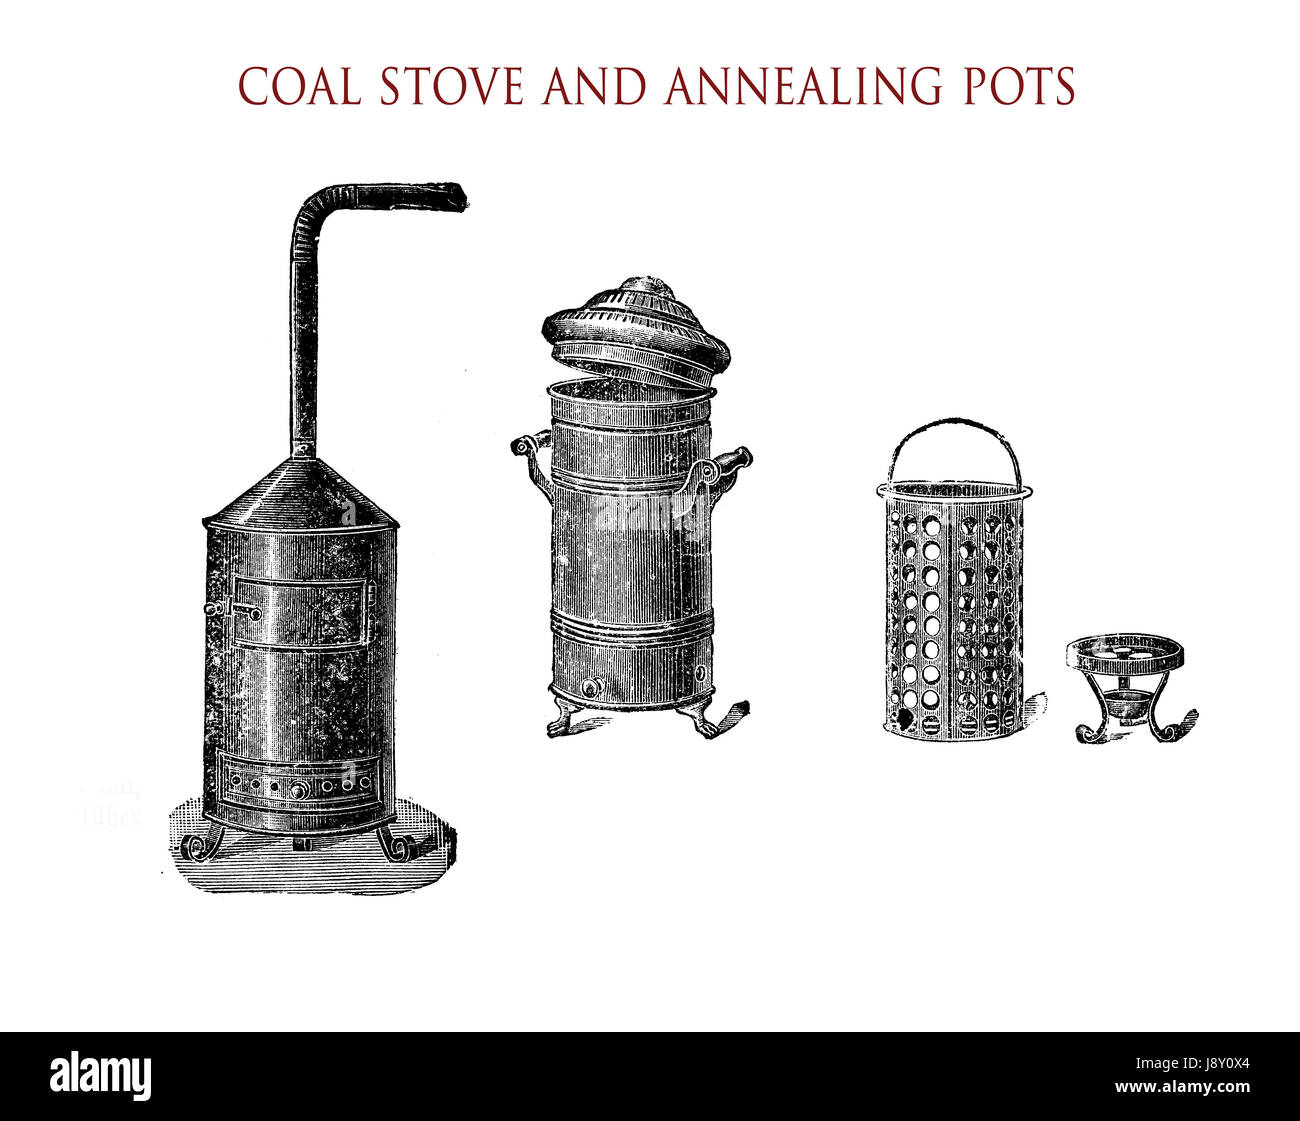 Vintage illustration, wood- or coal stove with ventpipe  and annealing pots - Stock Image